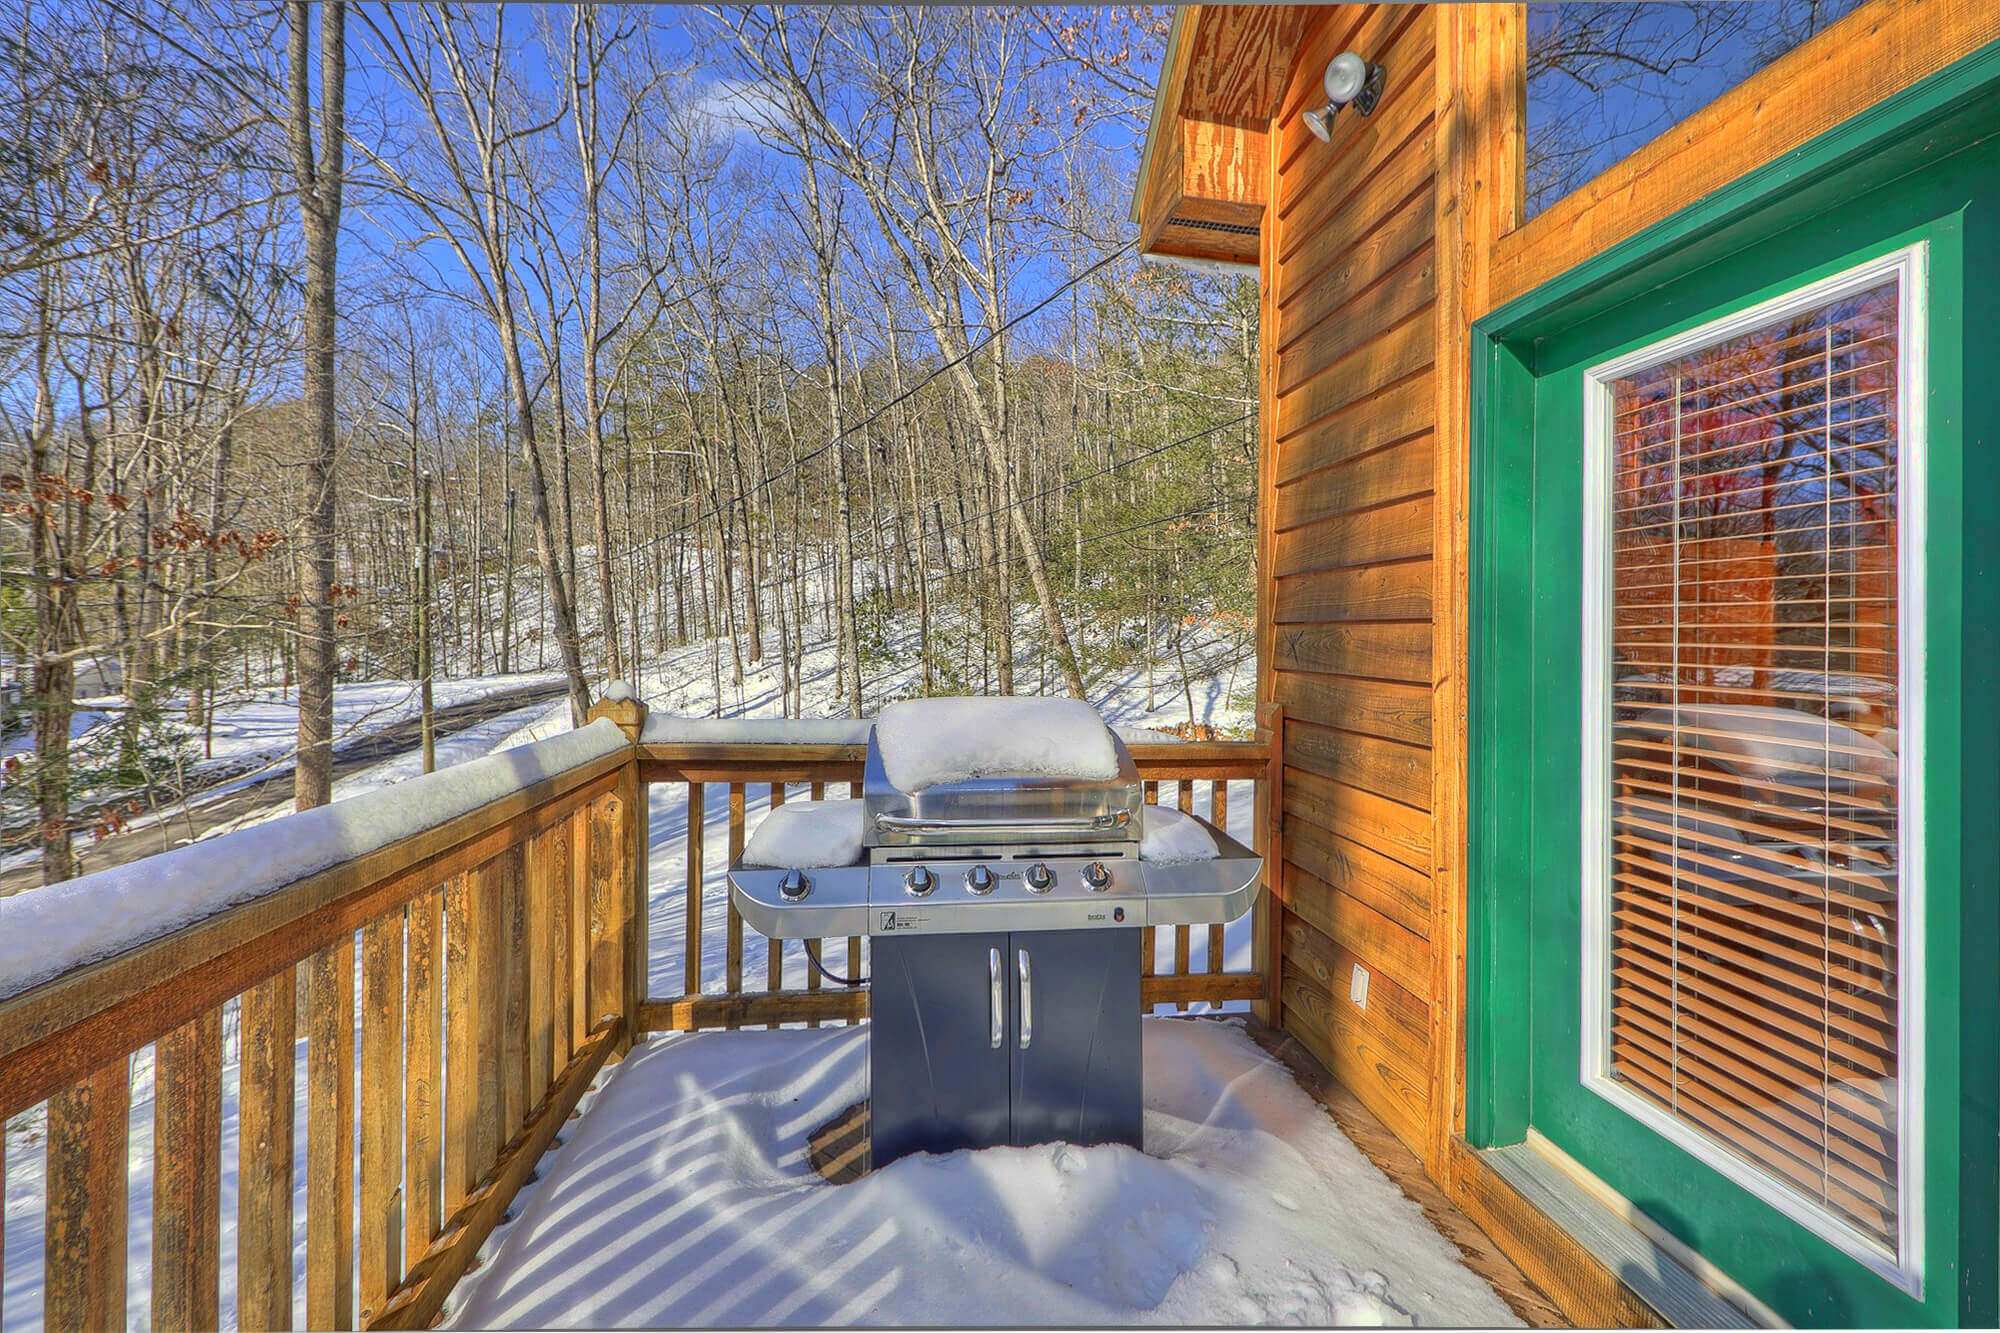 Smoky Mountain Romance 1 Bedroom Secluded Private Cabin Rental Elk Springs Resort